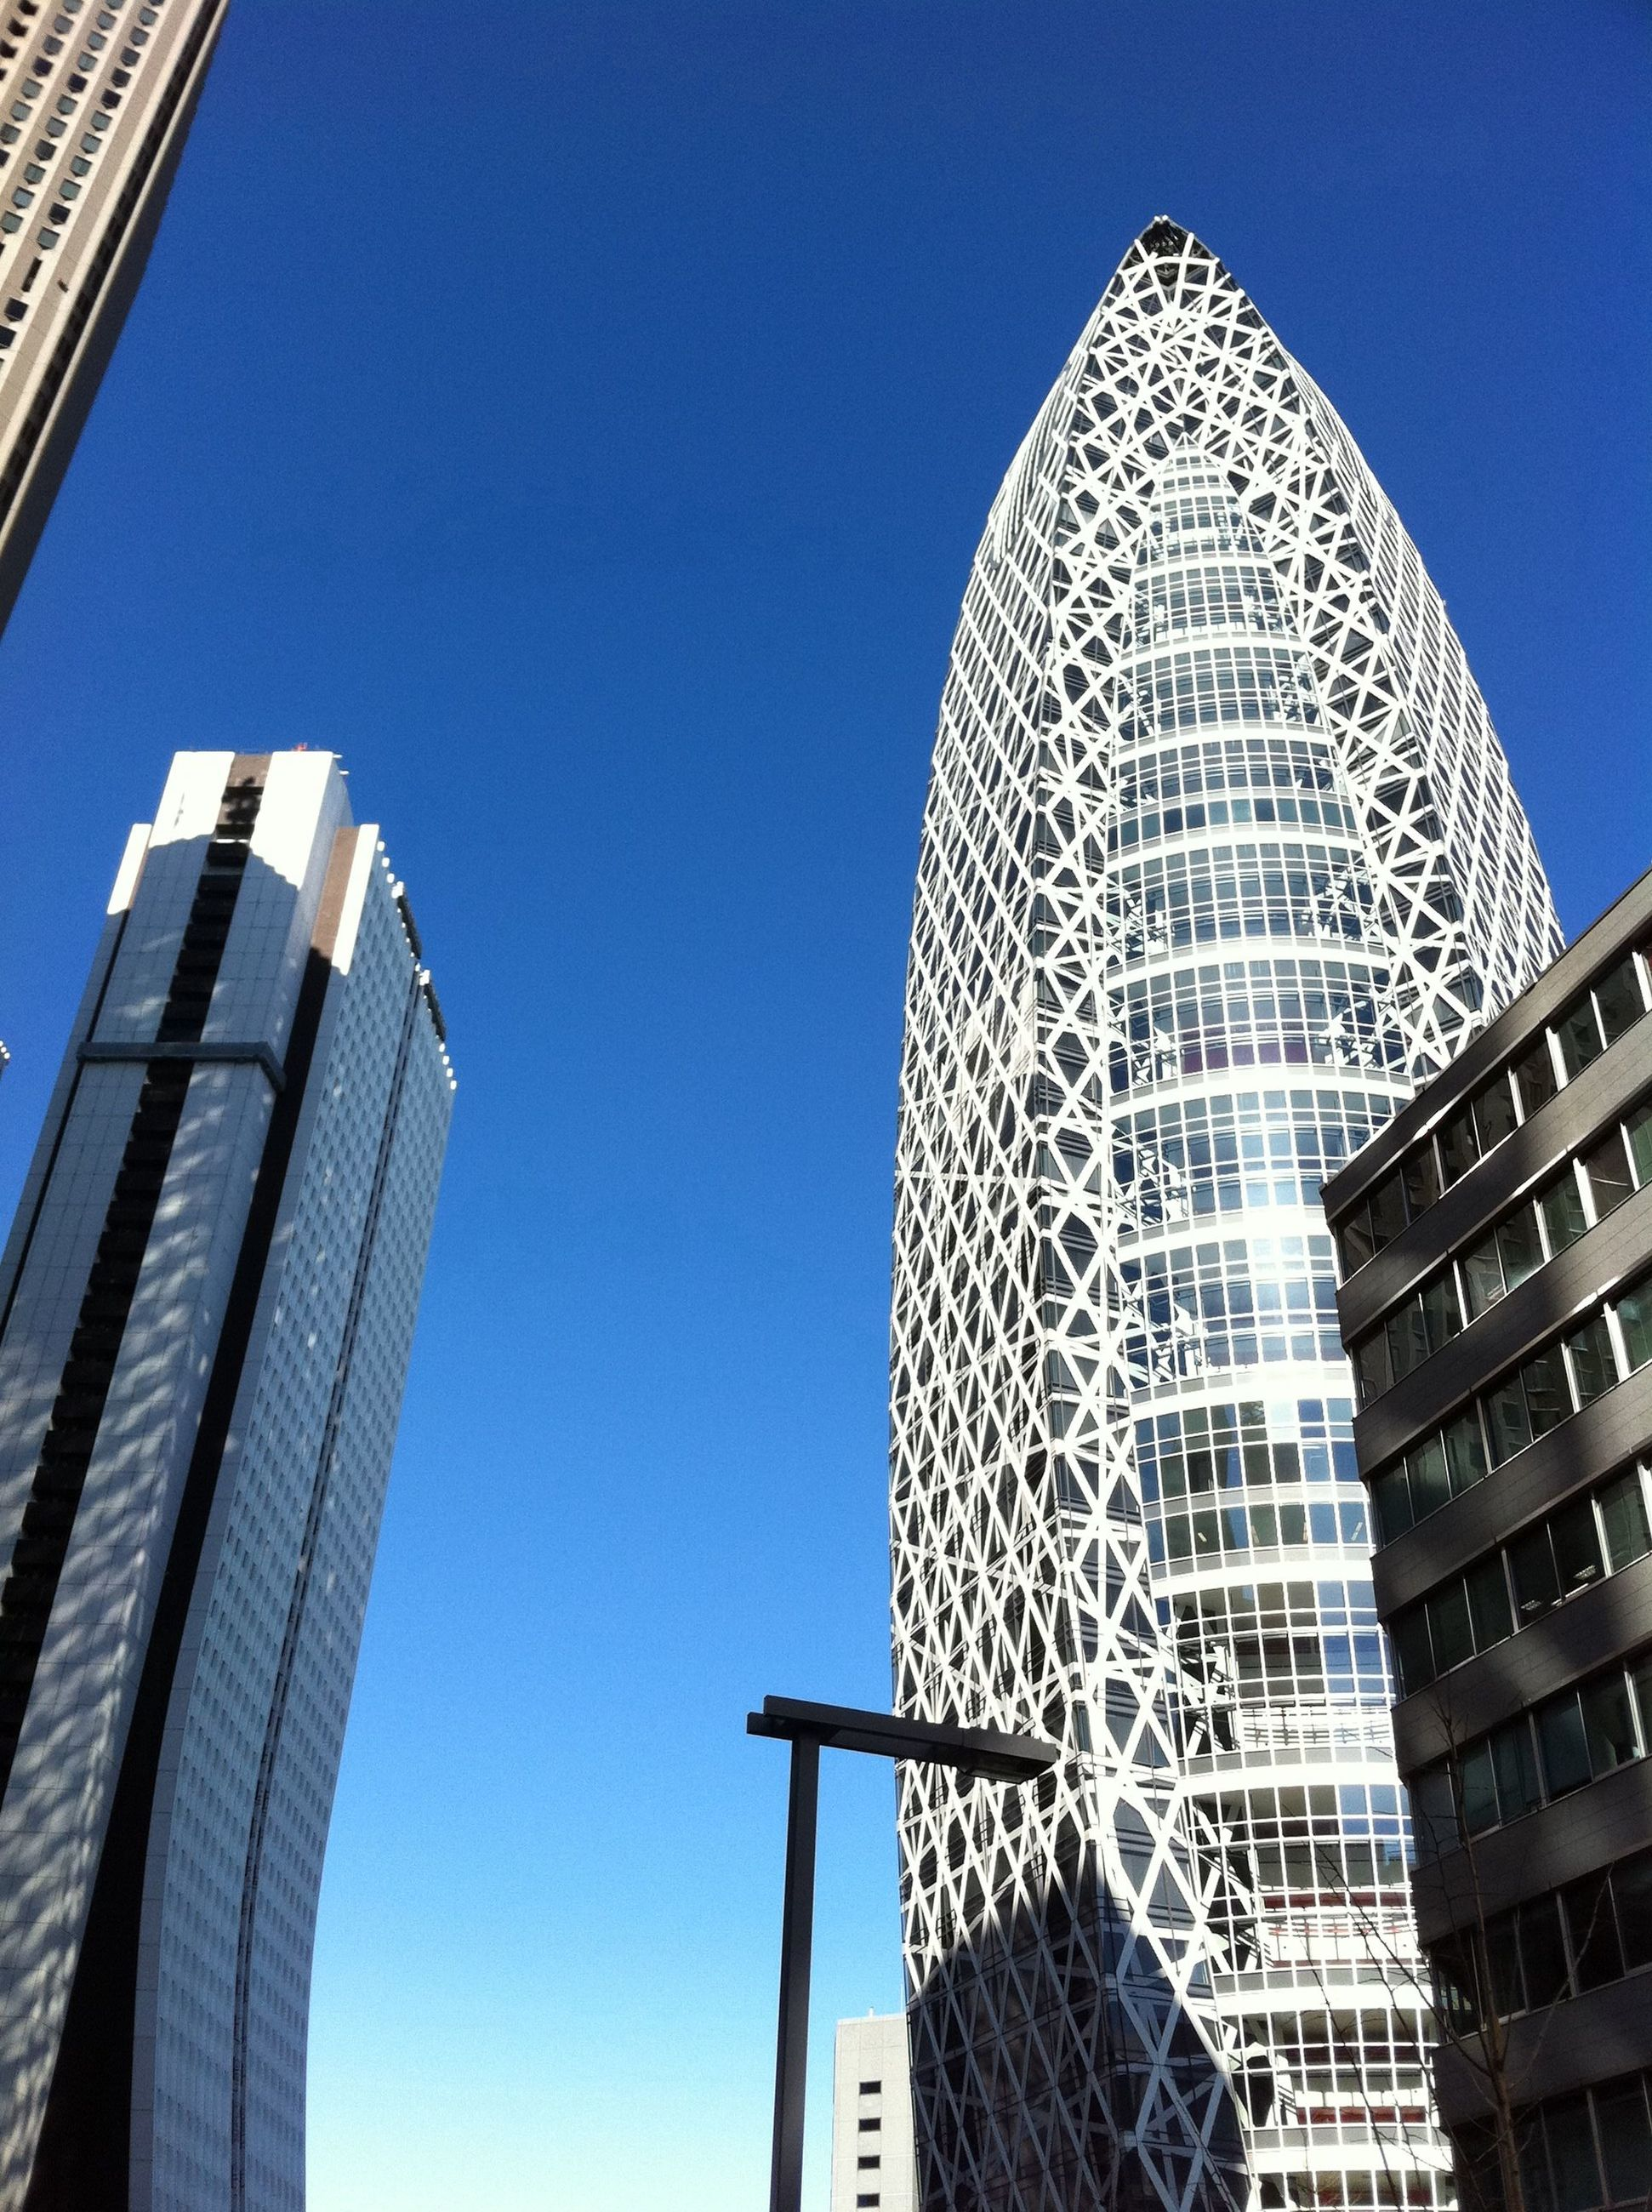 low angle view, architecture, building exterior, built structure, modern, blue, clear sky, tall - high, skyscraper, tower, office building, city, sky, famous place, travel destinations, building, capital cities, directly below, day, no people